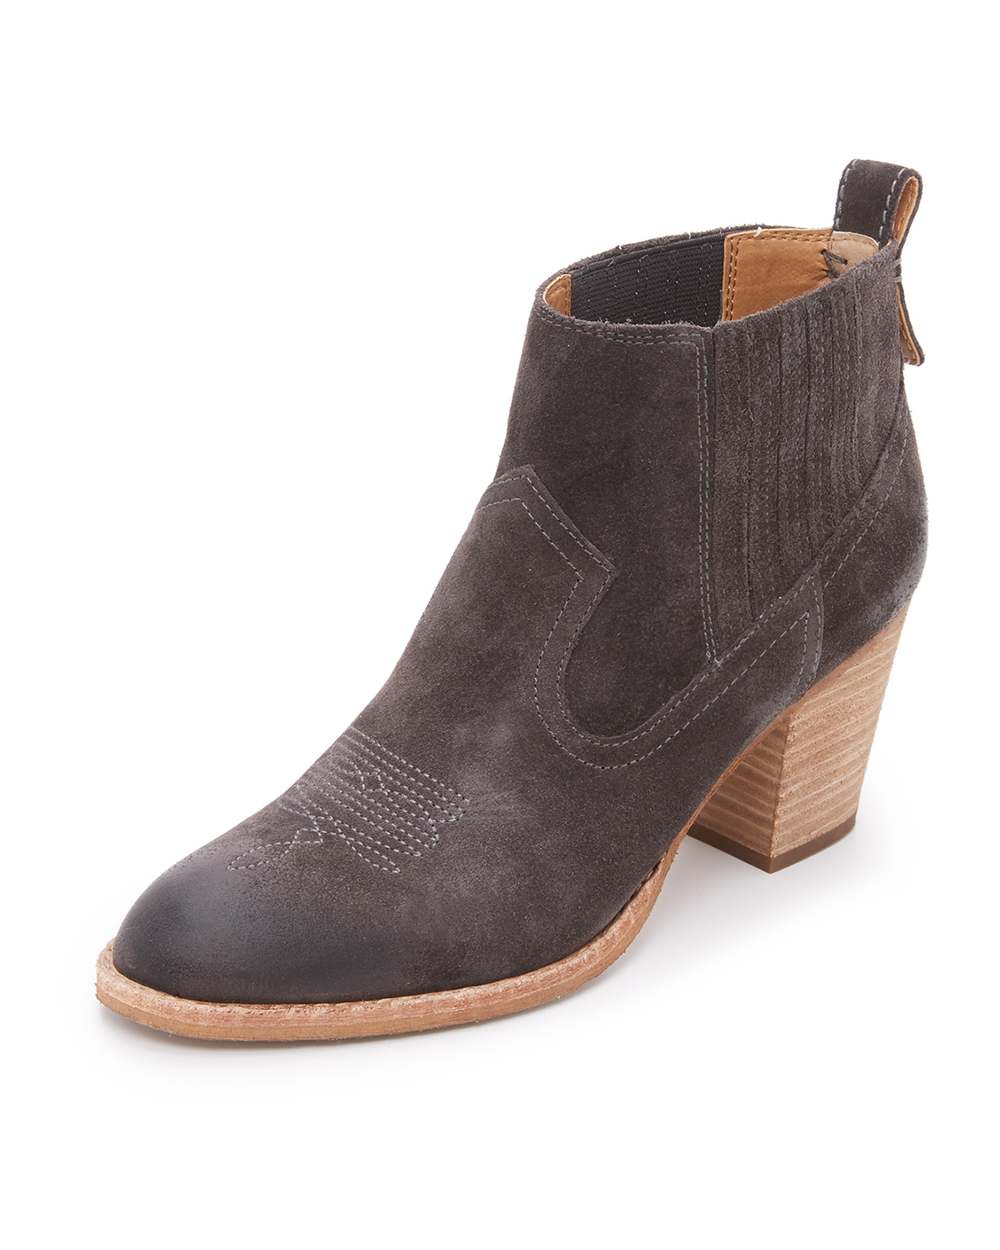 Western Inspired Boots - Dolce Vita Jones Booties